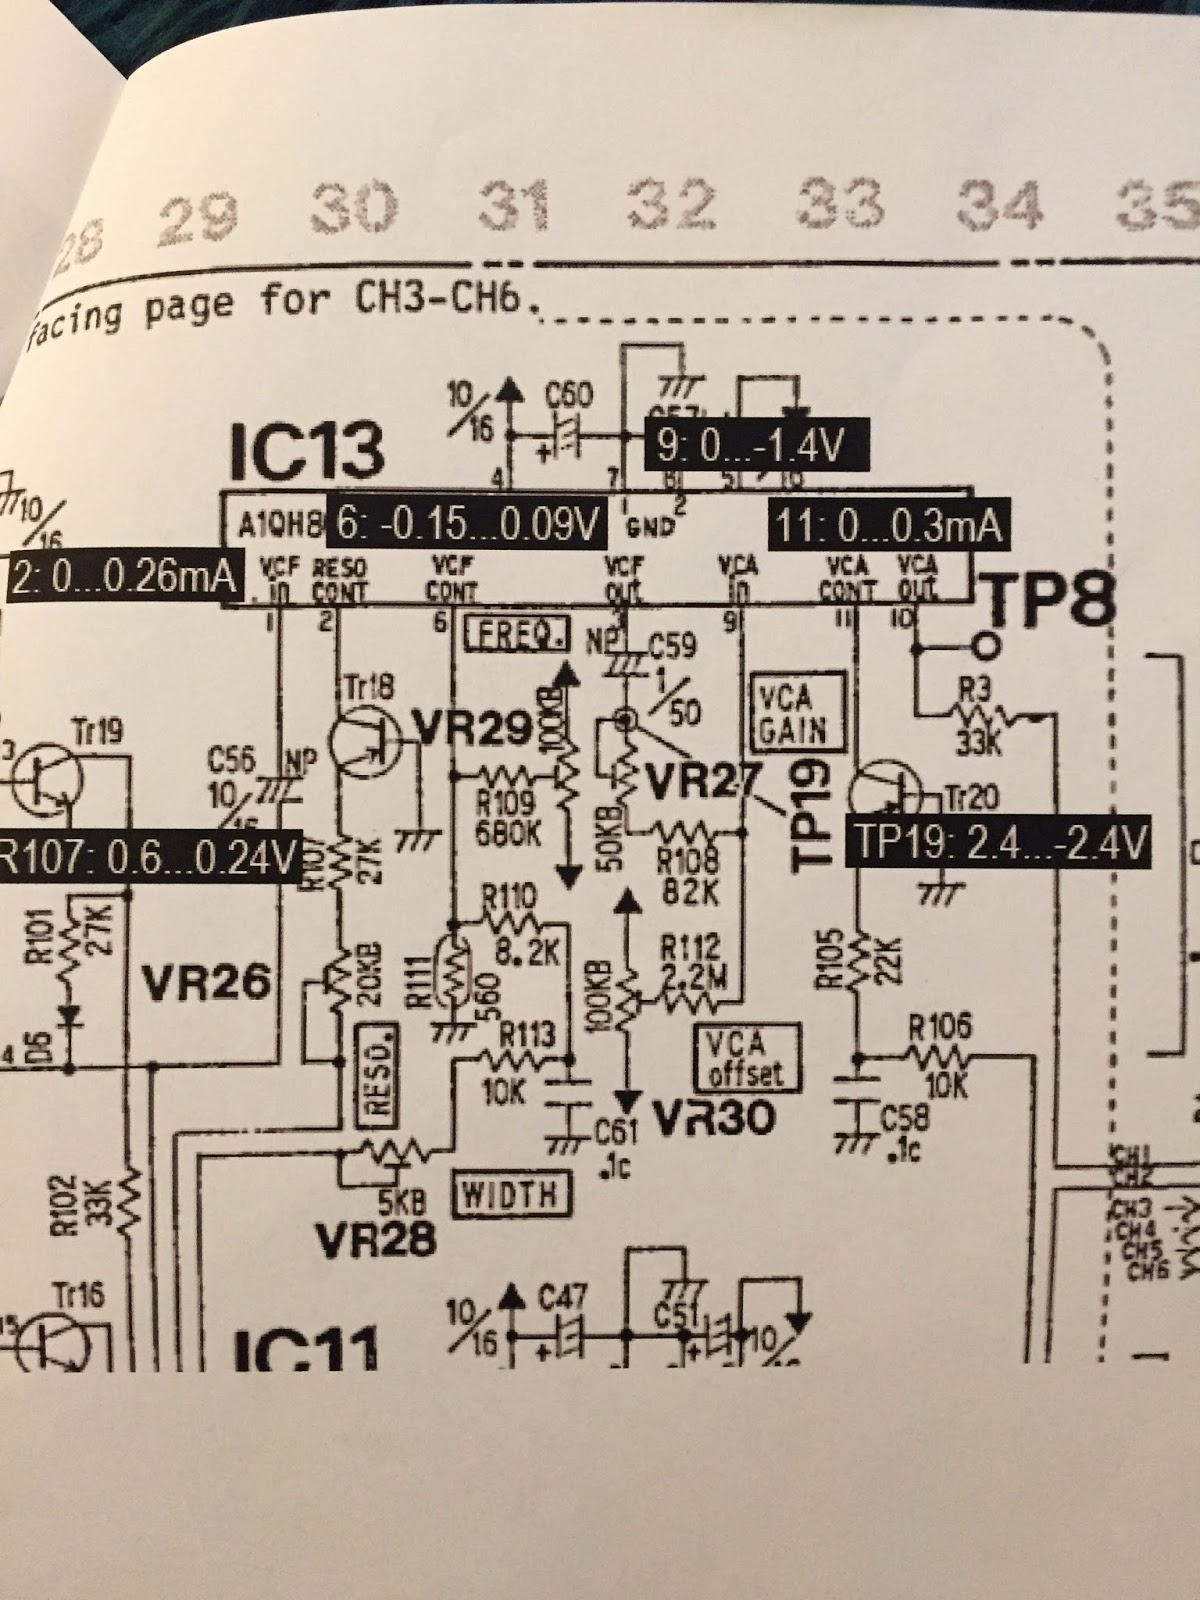 an annotated juno 106 service manual showing the various voltages i can t quite remember where i got it but i think analogue renaissance made it  [ 1200 x 1600 Pixel ]